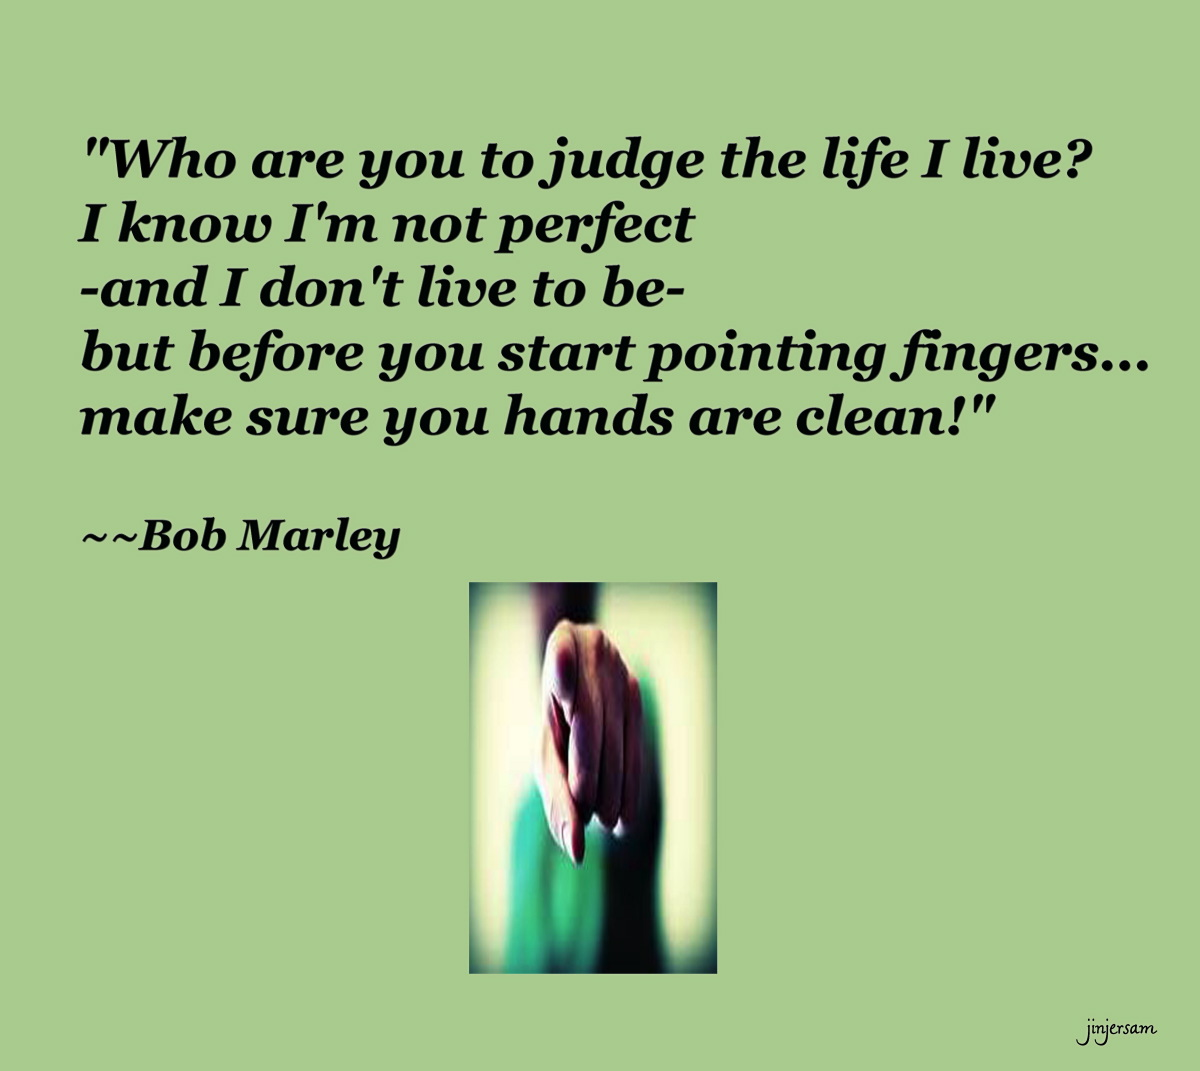 Pointing Fingers quote #2